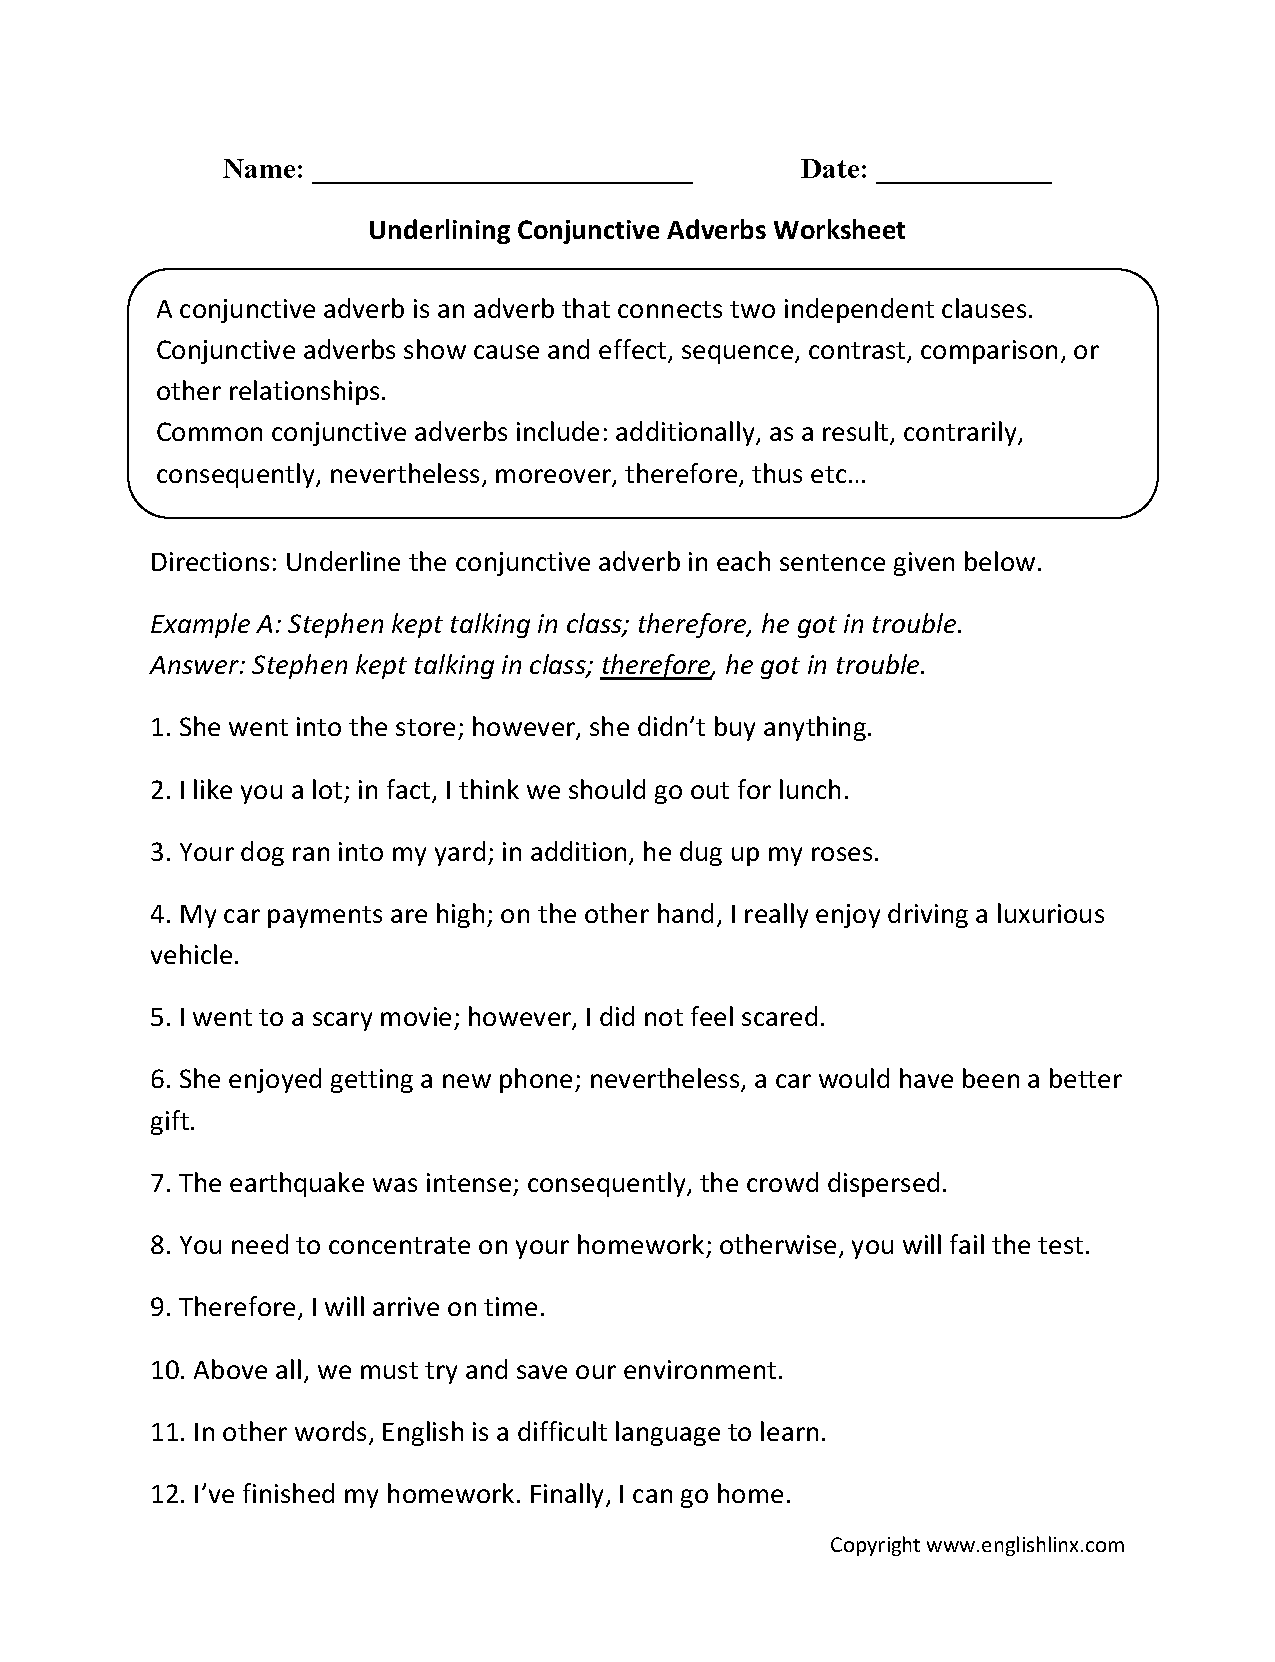 Weirdmailus  Wonderful Englishlinxcom  Conjunctions Worksheets With Heavenly Worksheet With Amazing Free English Worksheets For Grade  Also Irregular Past Tense Verb Worksheet In Addition Grade  Area And Perimeter Worksheets And Free Maths Worksheets Year  As Well As Worksheet On Solar System Additionally Kinder Worksheets Math From Englishlinxcom With Weirdmailus  Heavenly Englishlinxcom  Conjunctions Worksheets With Amazing Worksheet And Wonderful Free English Worksheets For Grade  Also Irregular Past Tense Verb Worksheet In Addition Grade  Area And Perimeter Worksheets From Englishlinxcom